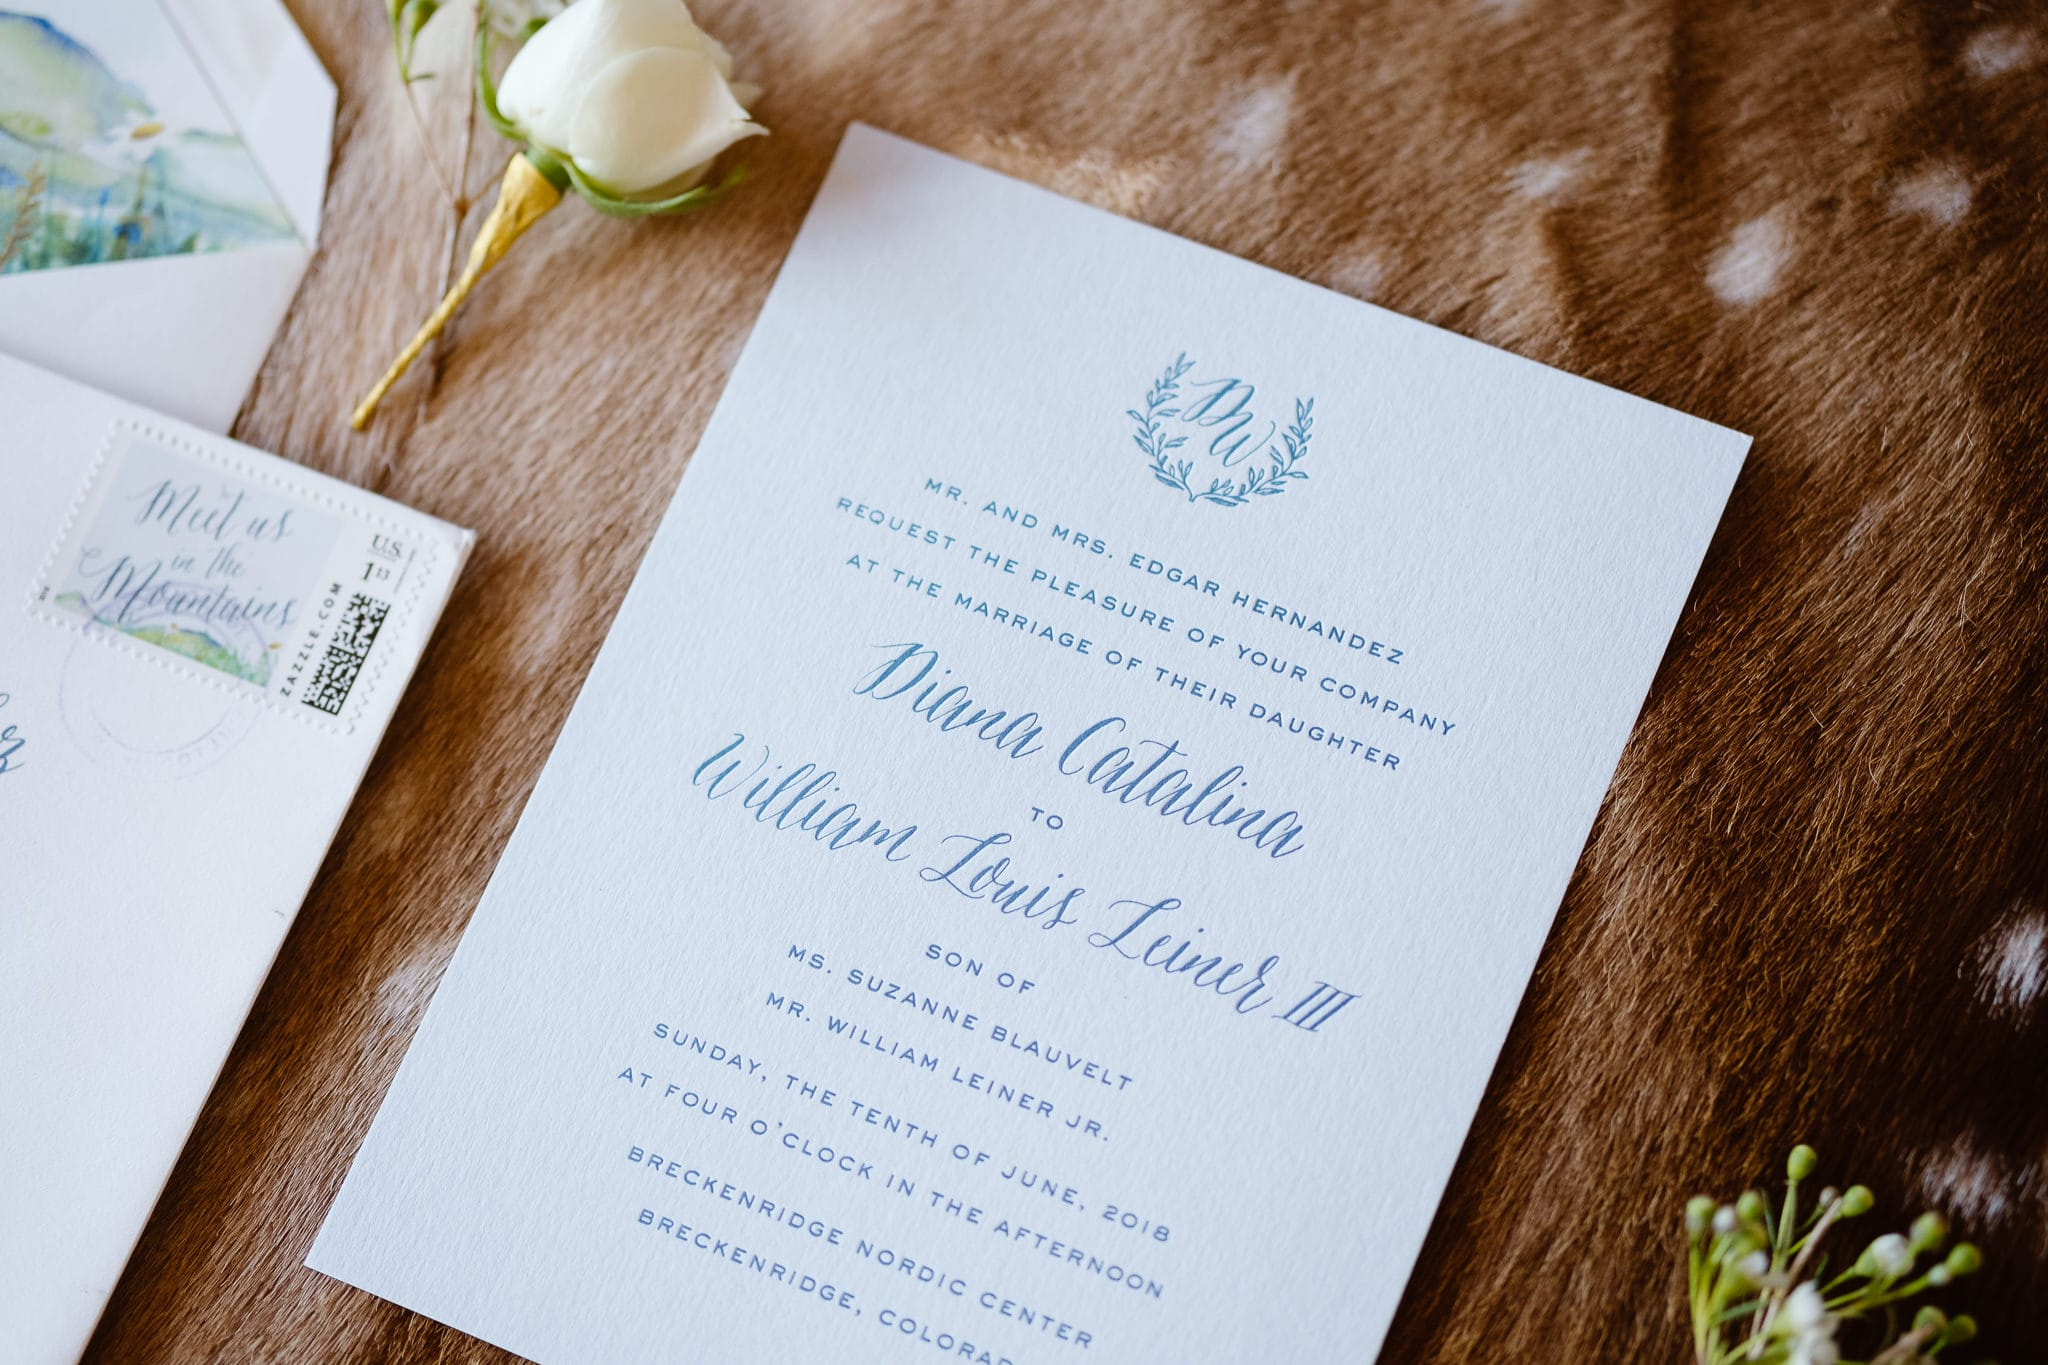 Mountain inspired wedding stationery with watercolor paint by Cheree Berry Paper, Breckenridge Nordic Center wedding